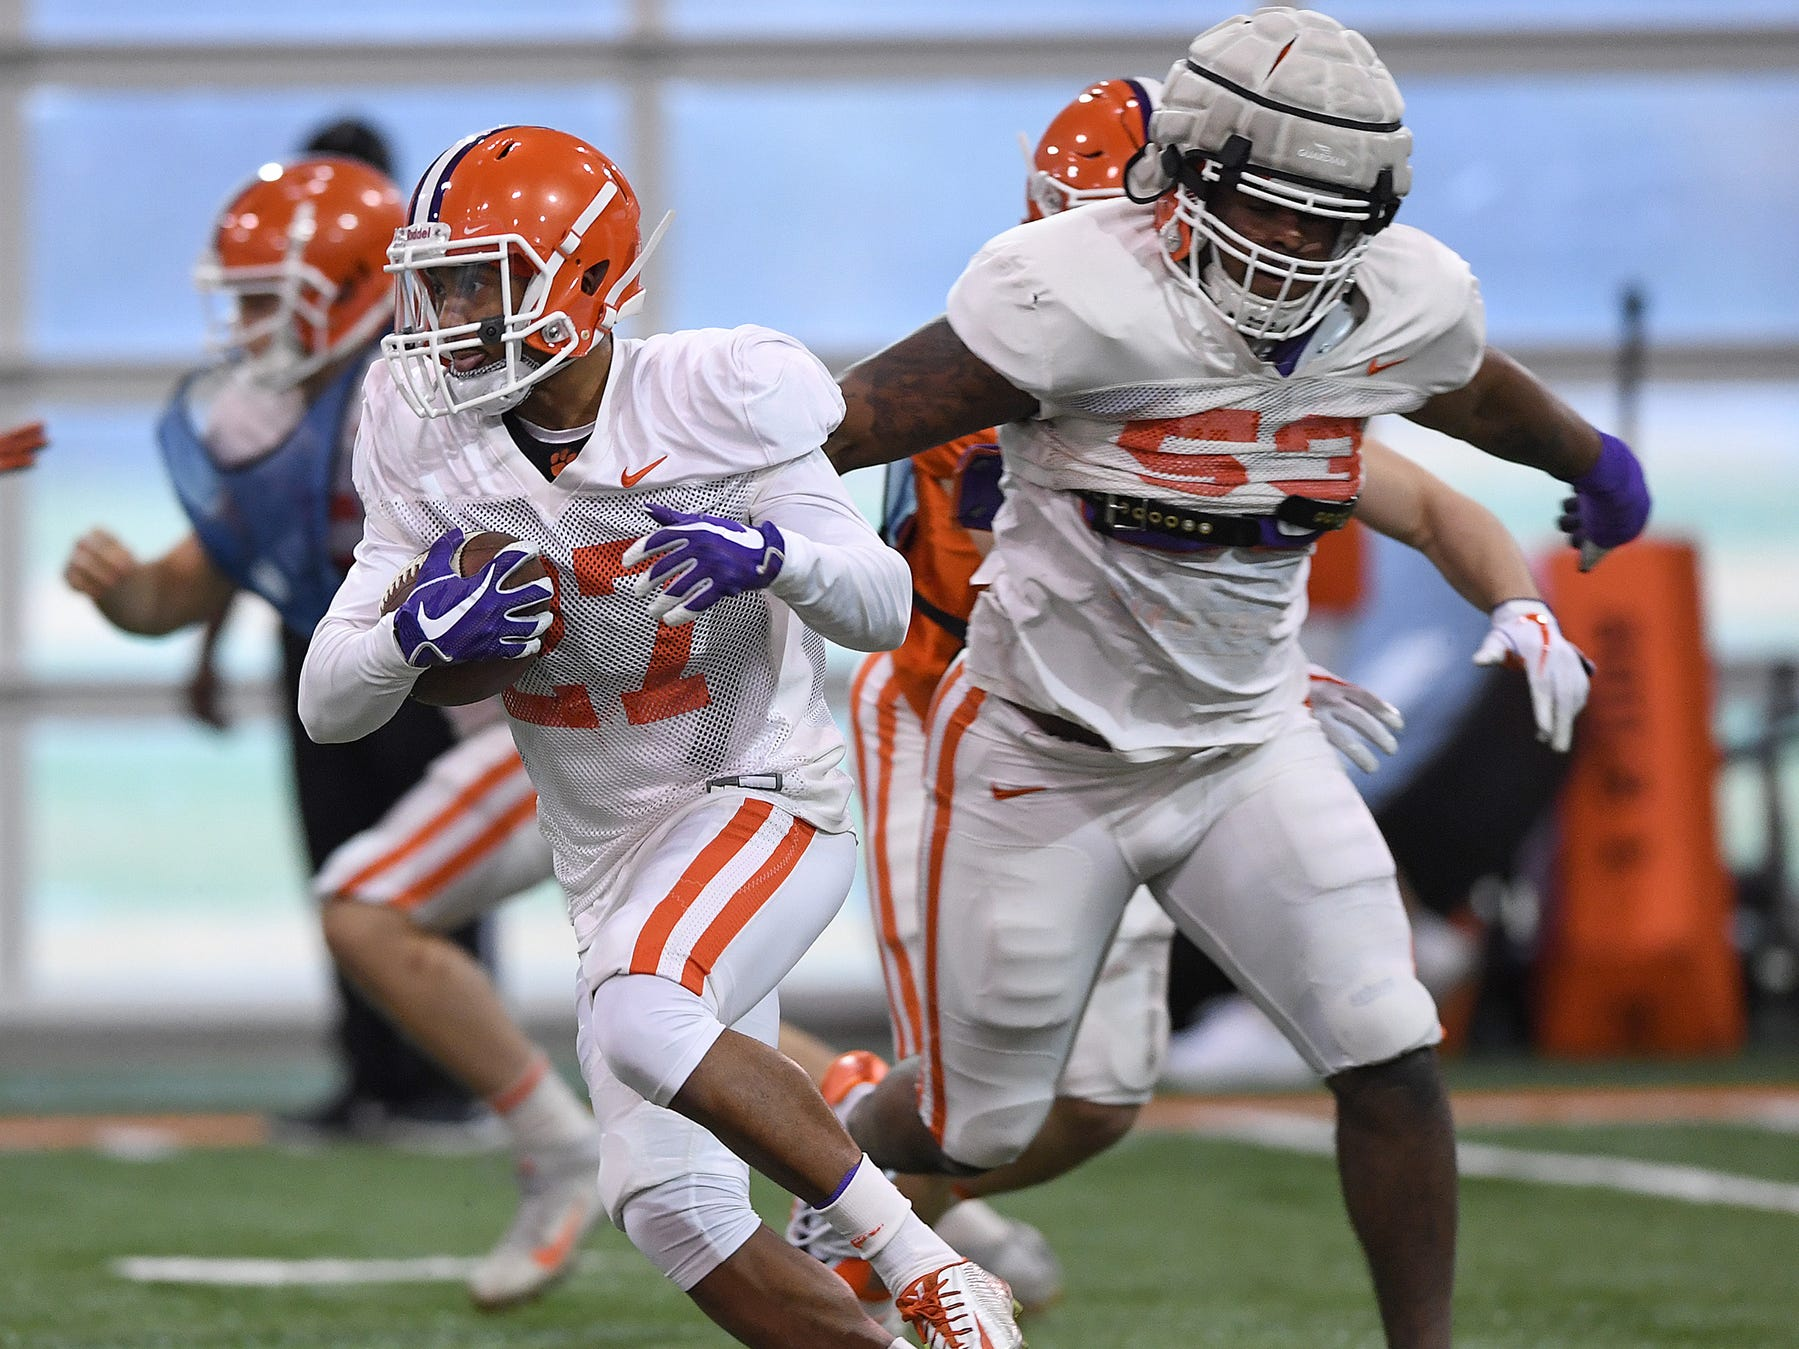 Clemson running back Ty Lucas (27) returns a kick during the Tigers Cotton Bowl practice on Friday, December 14, 2018.